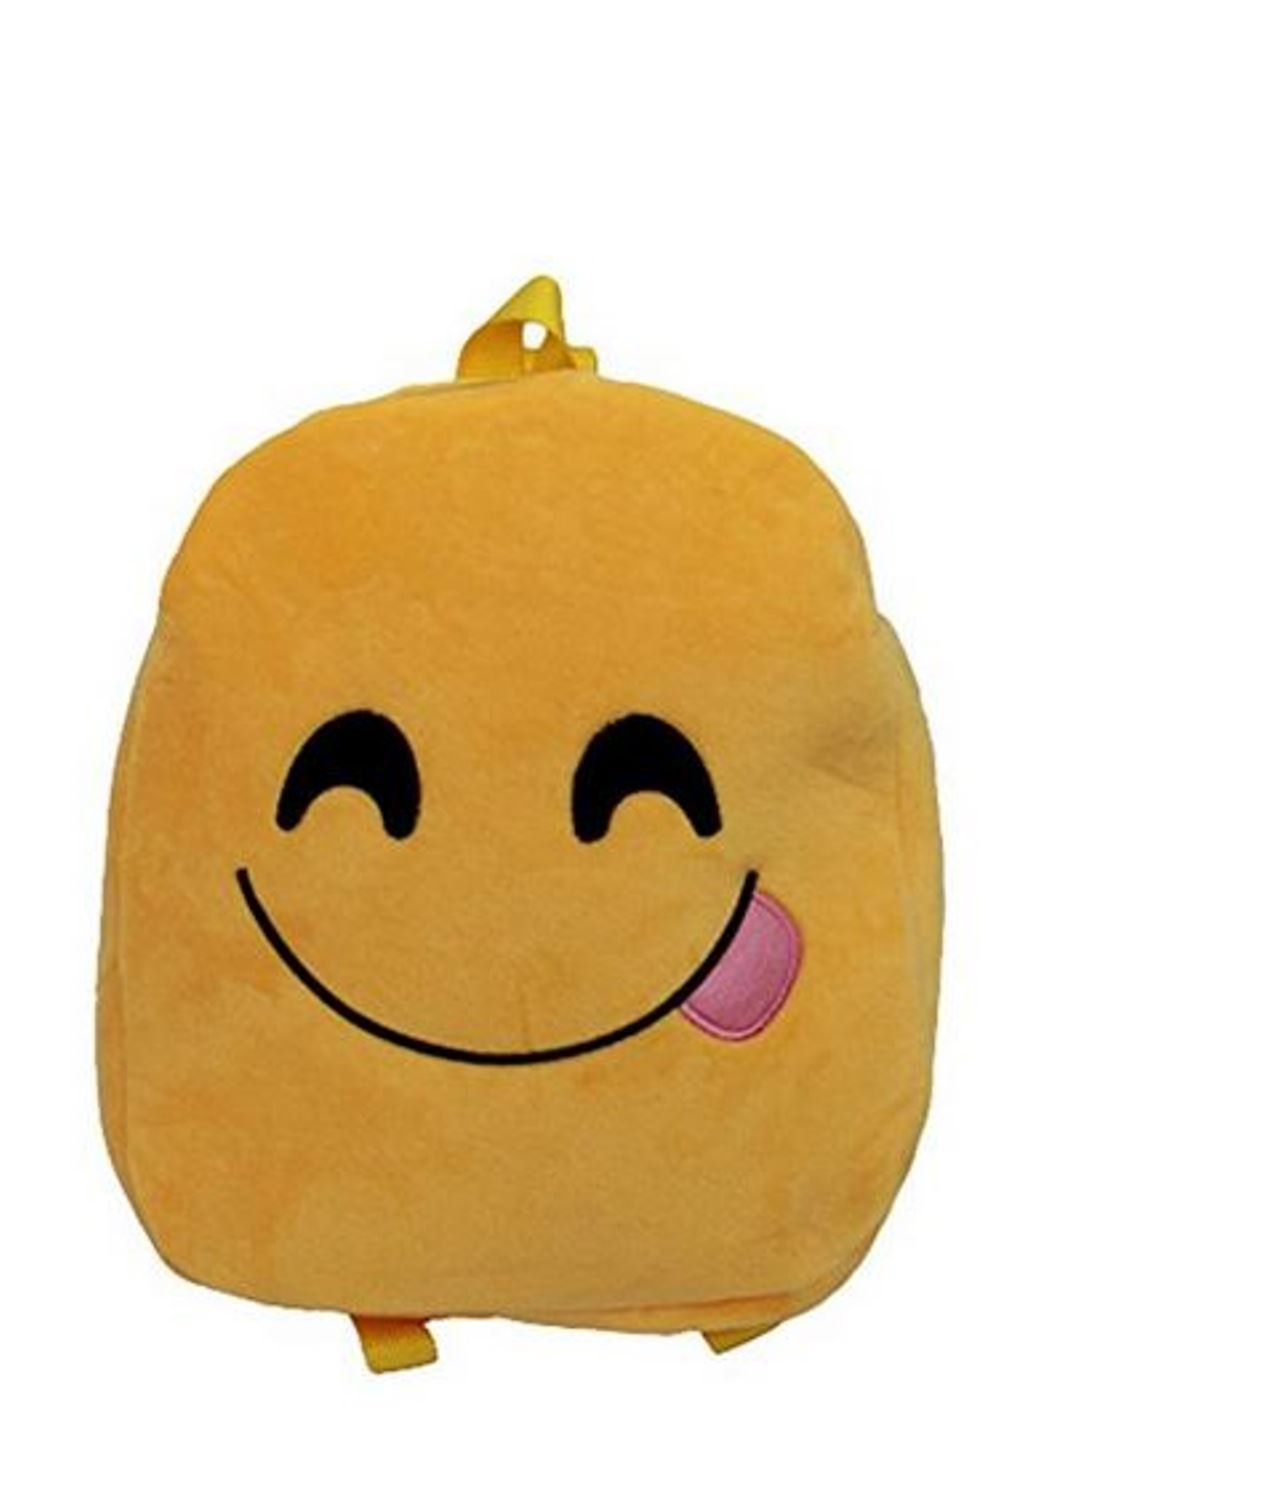 12.5'' Emoji Emoticon Backpack An Ultra-Cool Accessory for School, Travel, Camping, Sleepovers & Other Occasions (TONGUE)